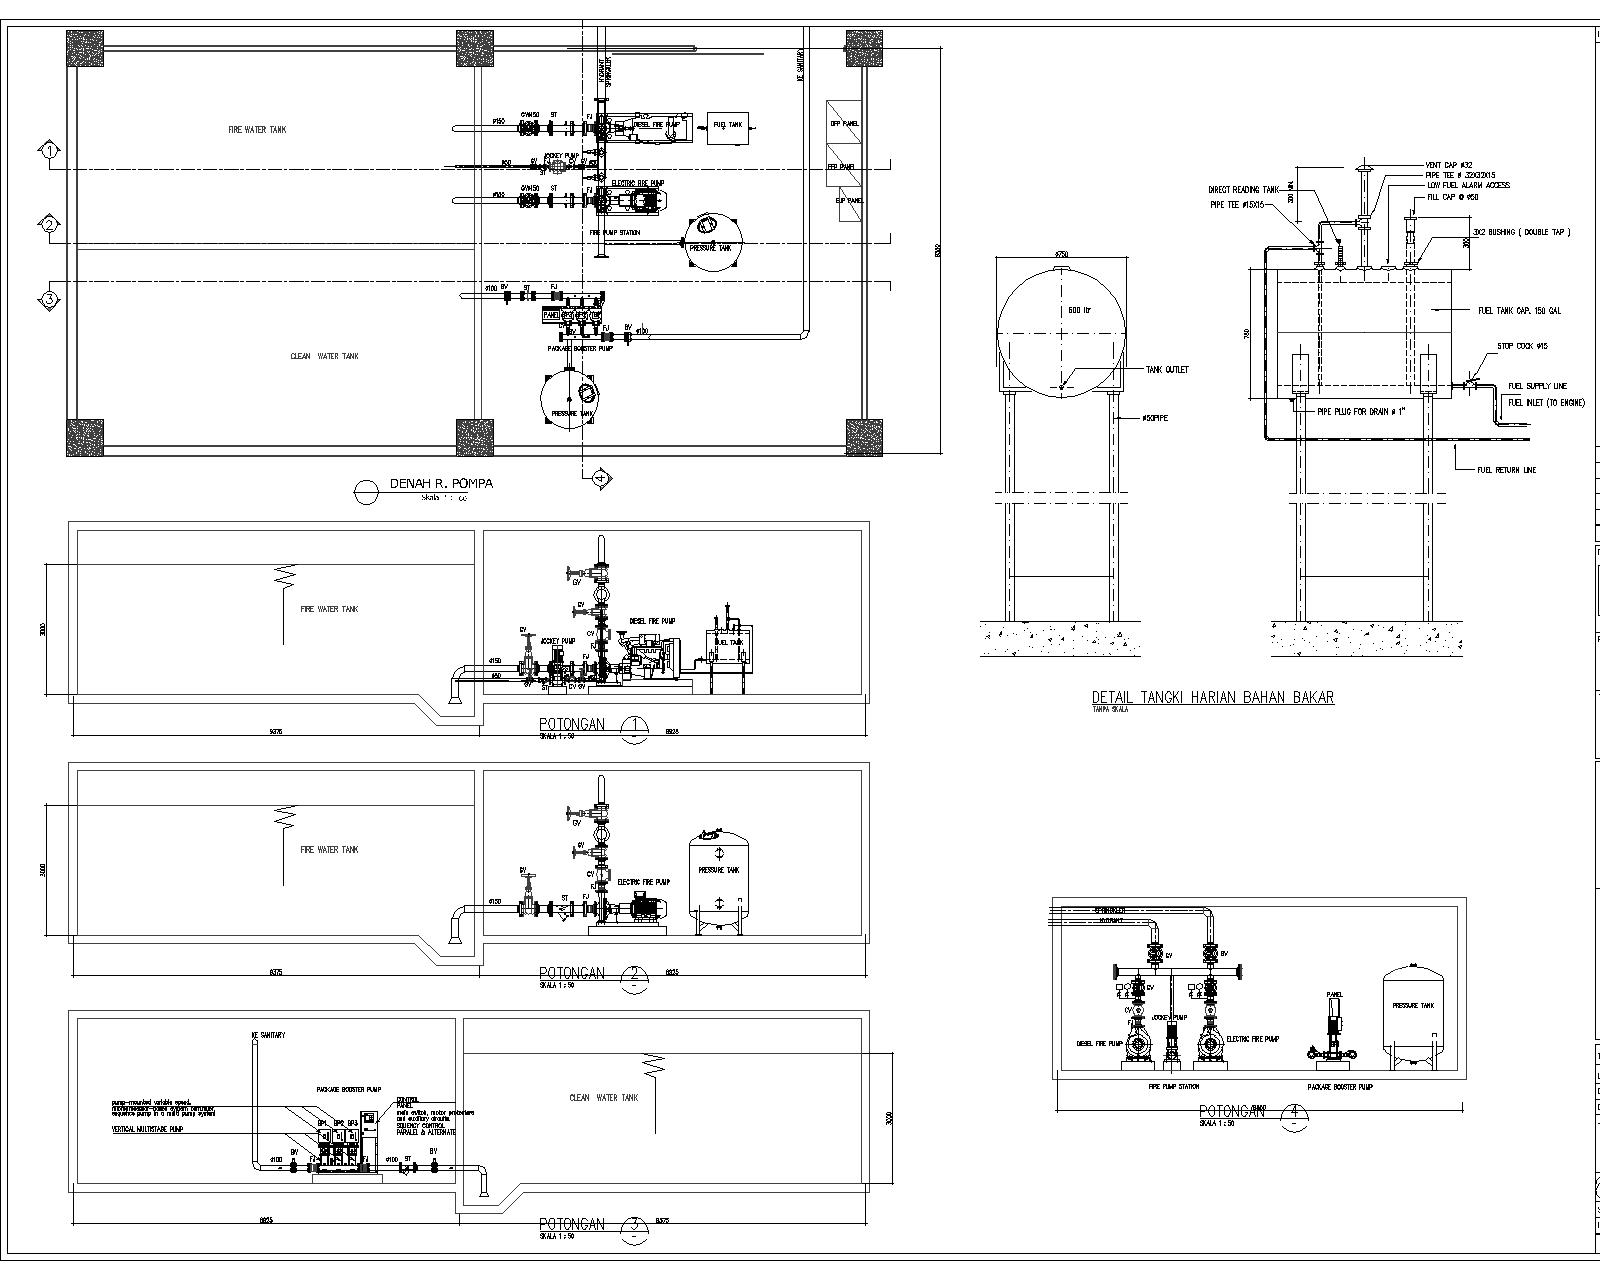 Jockey Pump Wiring Diagram Library Single Speed Spa Circulation Contoh Ruang Pompa Hydrant Springkler Booster